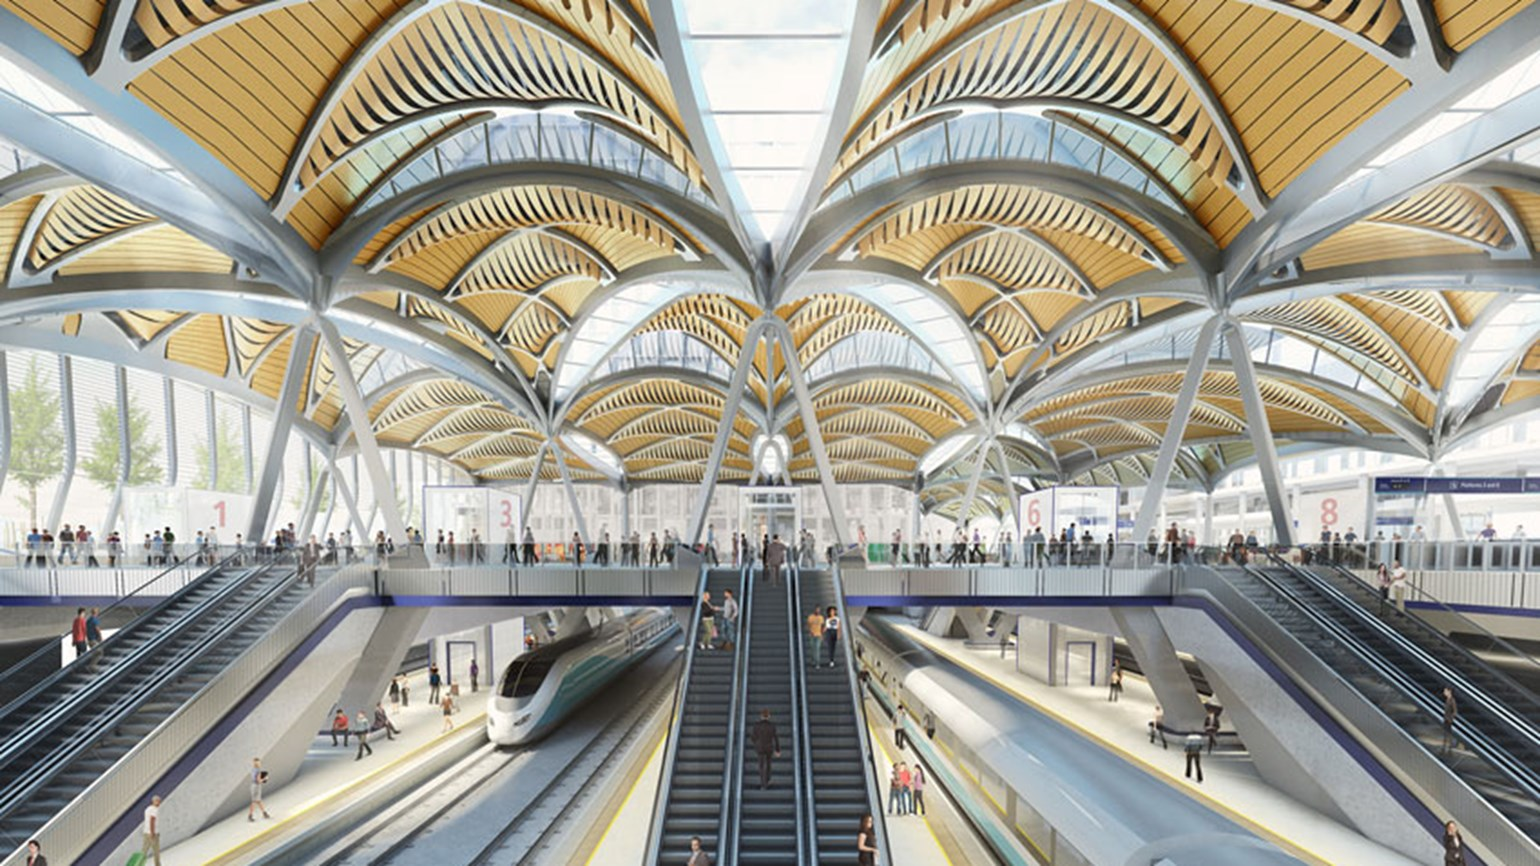 Artist impression of a new HS2 station